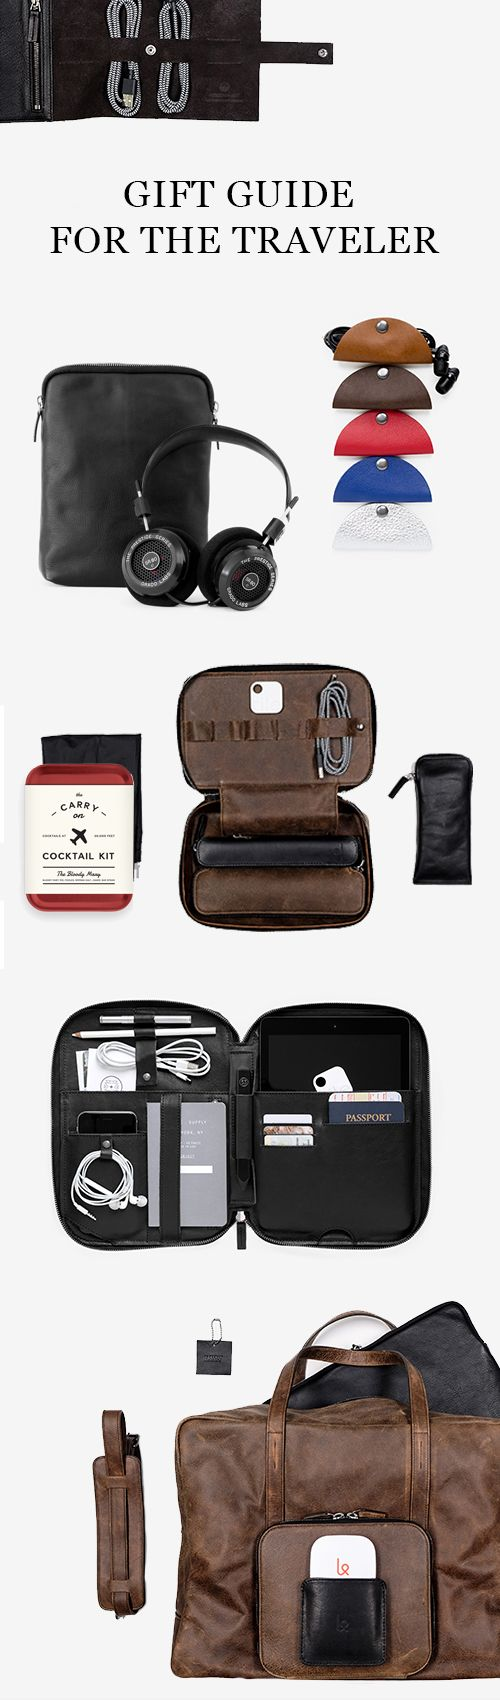 best gifts for the travelers and jetsetters